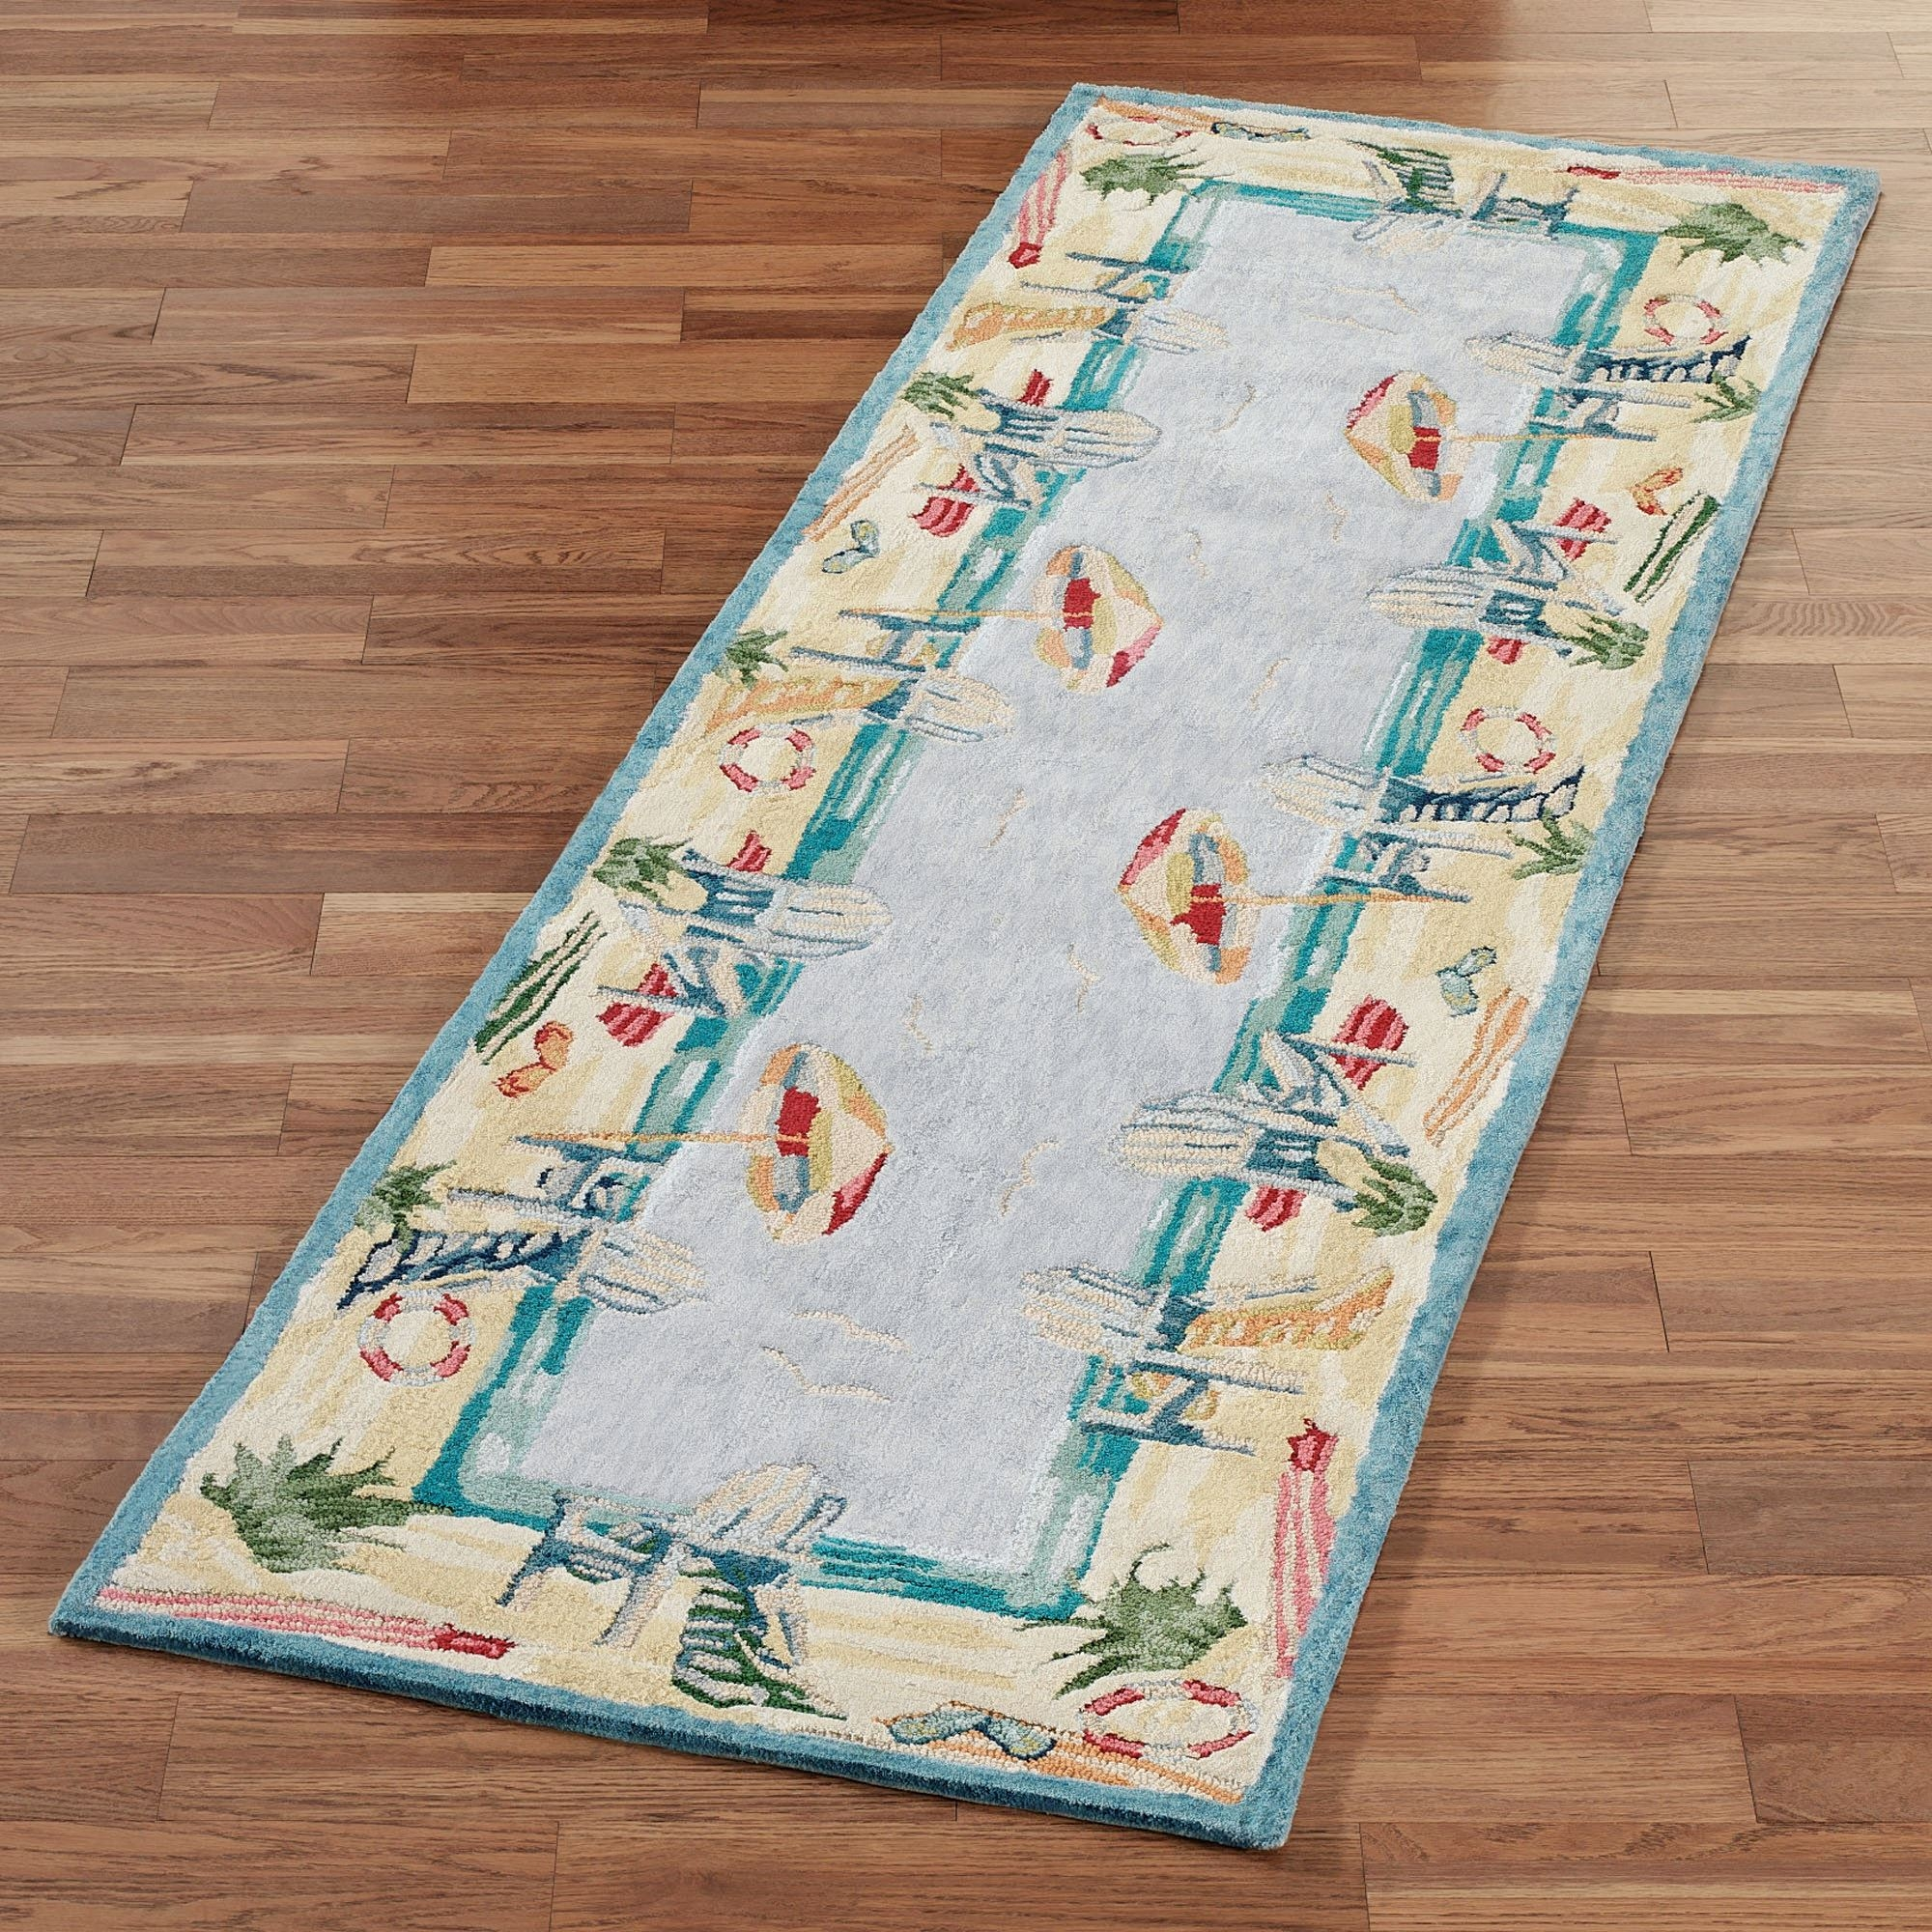 rugs sale essentials colorful and for beach amazing handmade kohls purple fluffy design blue area with usa red mohawk coral lowes grey lind large depot wool colored used afton decoration throw cheap ocean magnus rug mint round made home landscapes print bathroom x custom shag